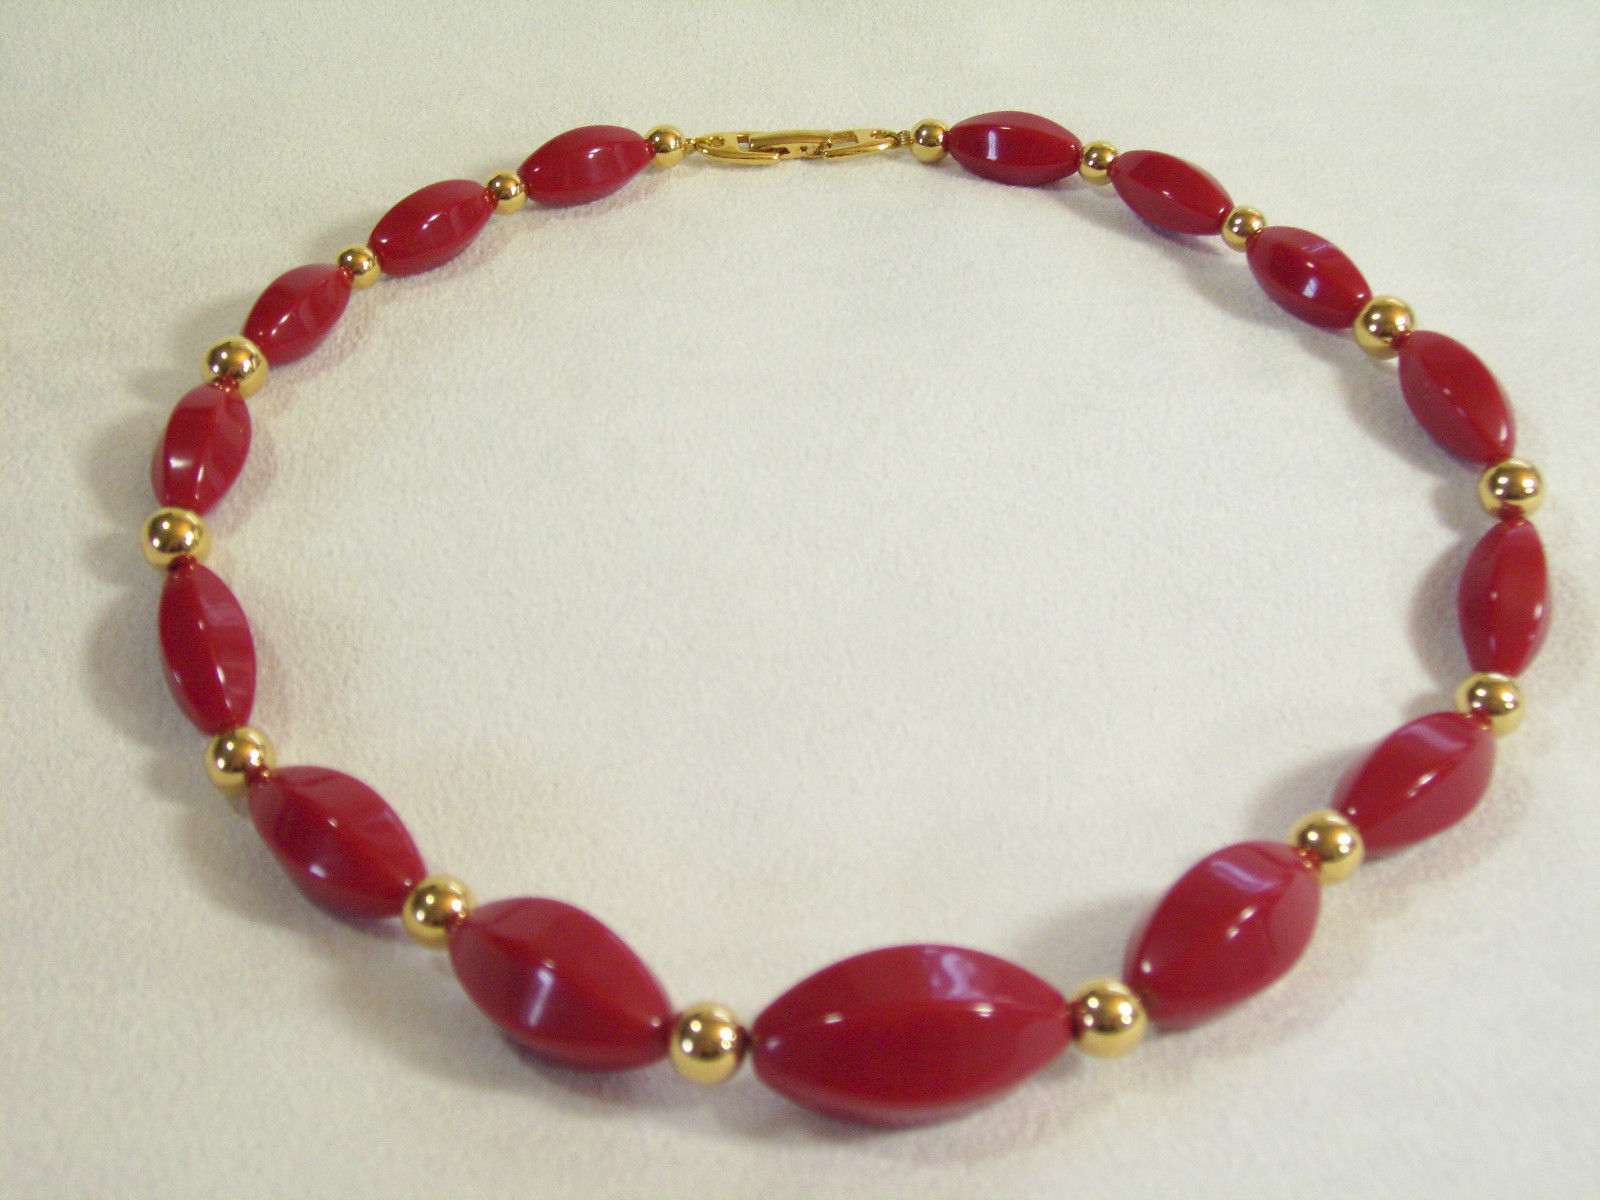 Napier Hot Red Beads Choker Necklace Gold Plated Oval Graduated Size Vintage  image 3